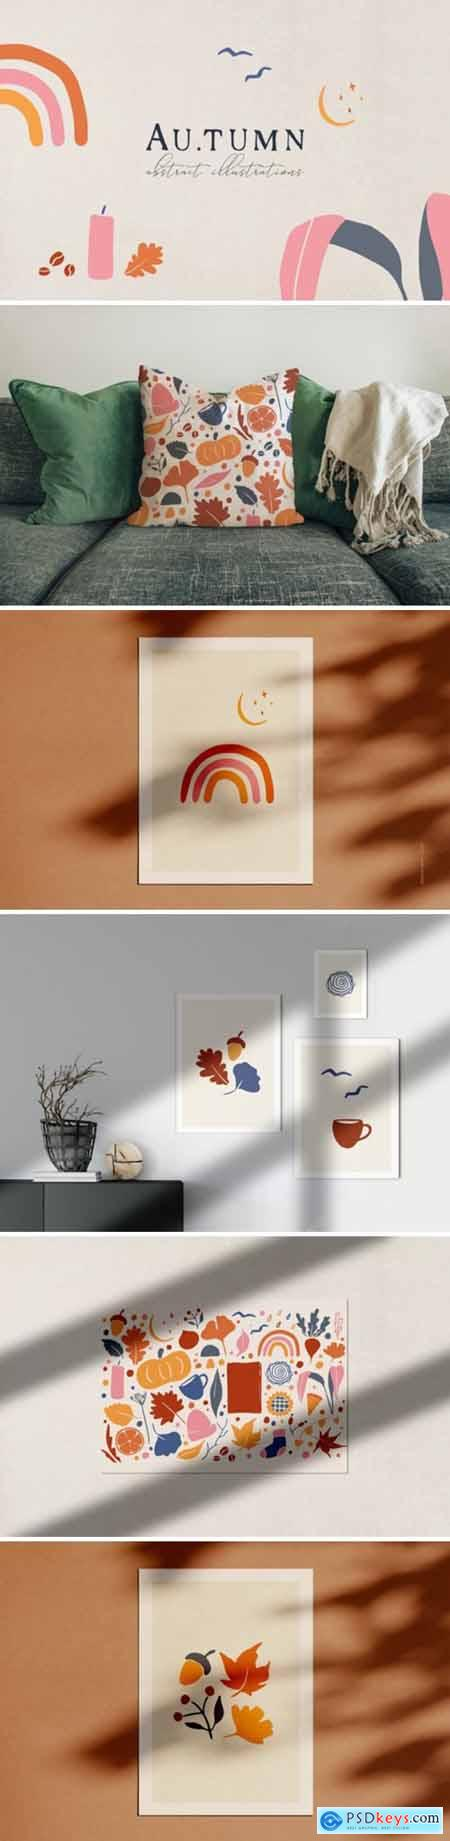 Abstract Autumn Illustrations 1985099